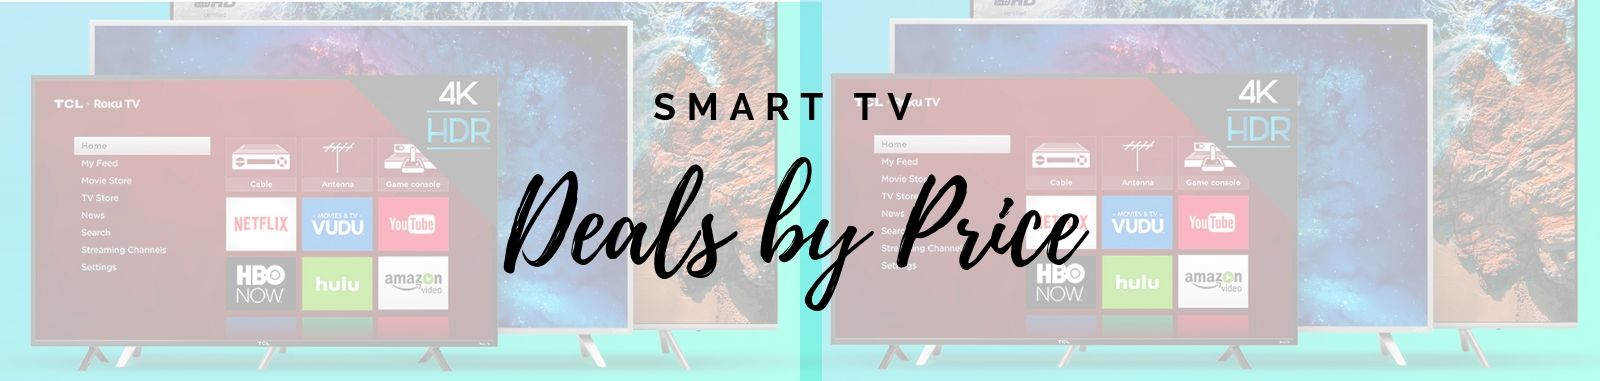 Smart tv deals by price